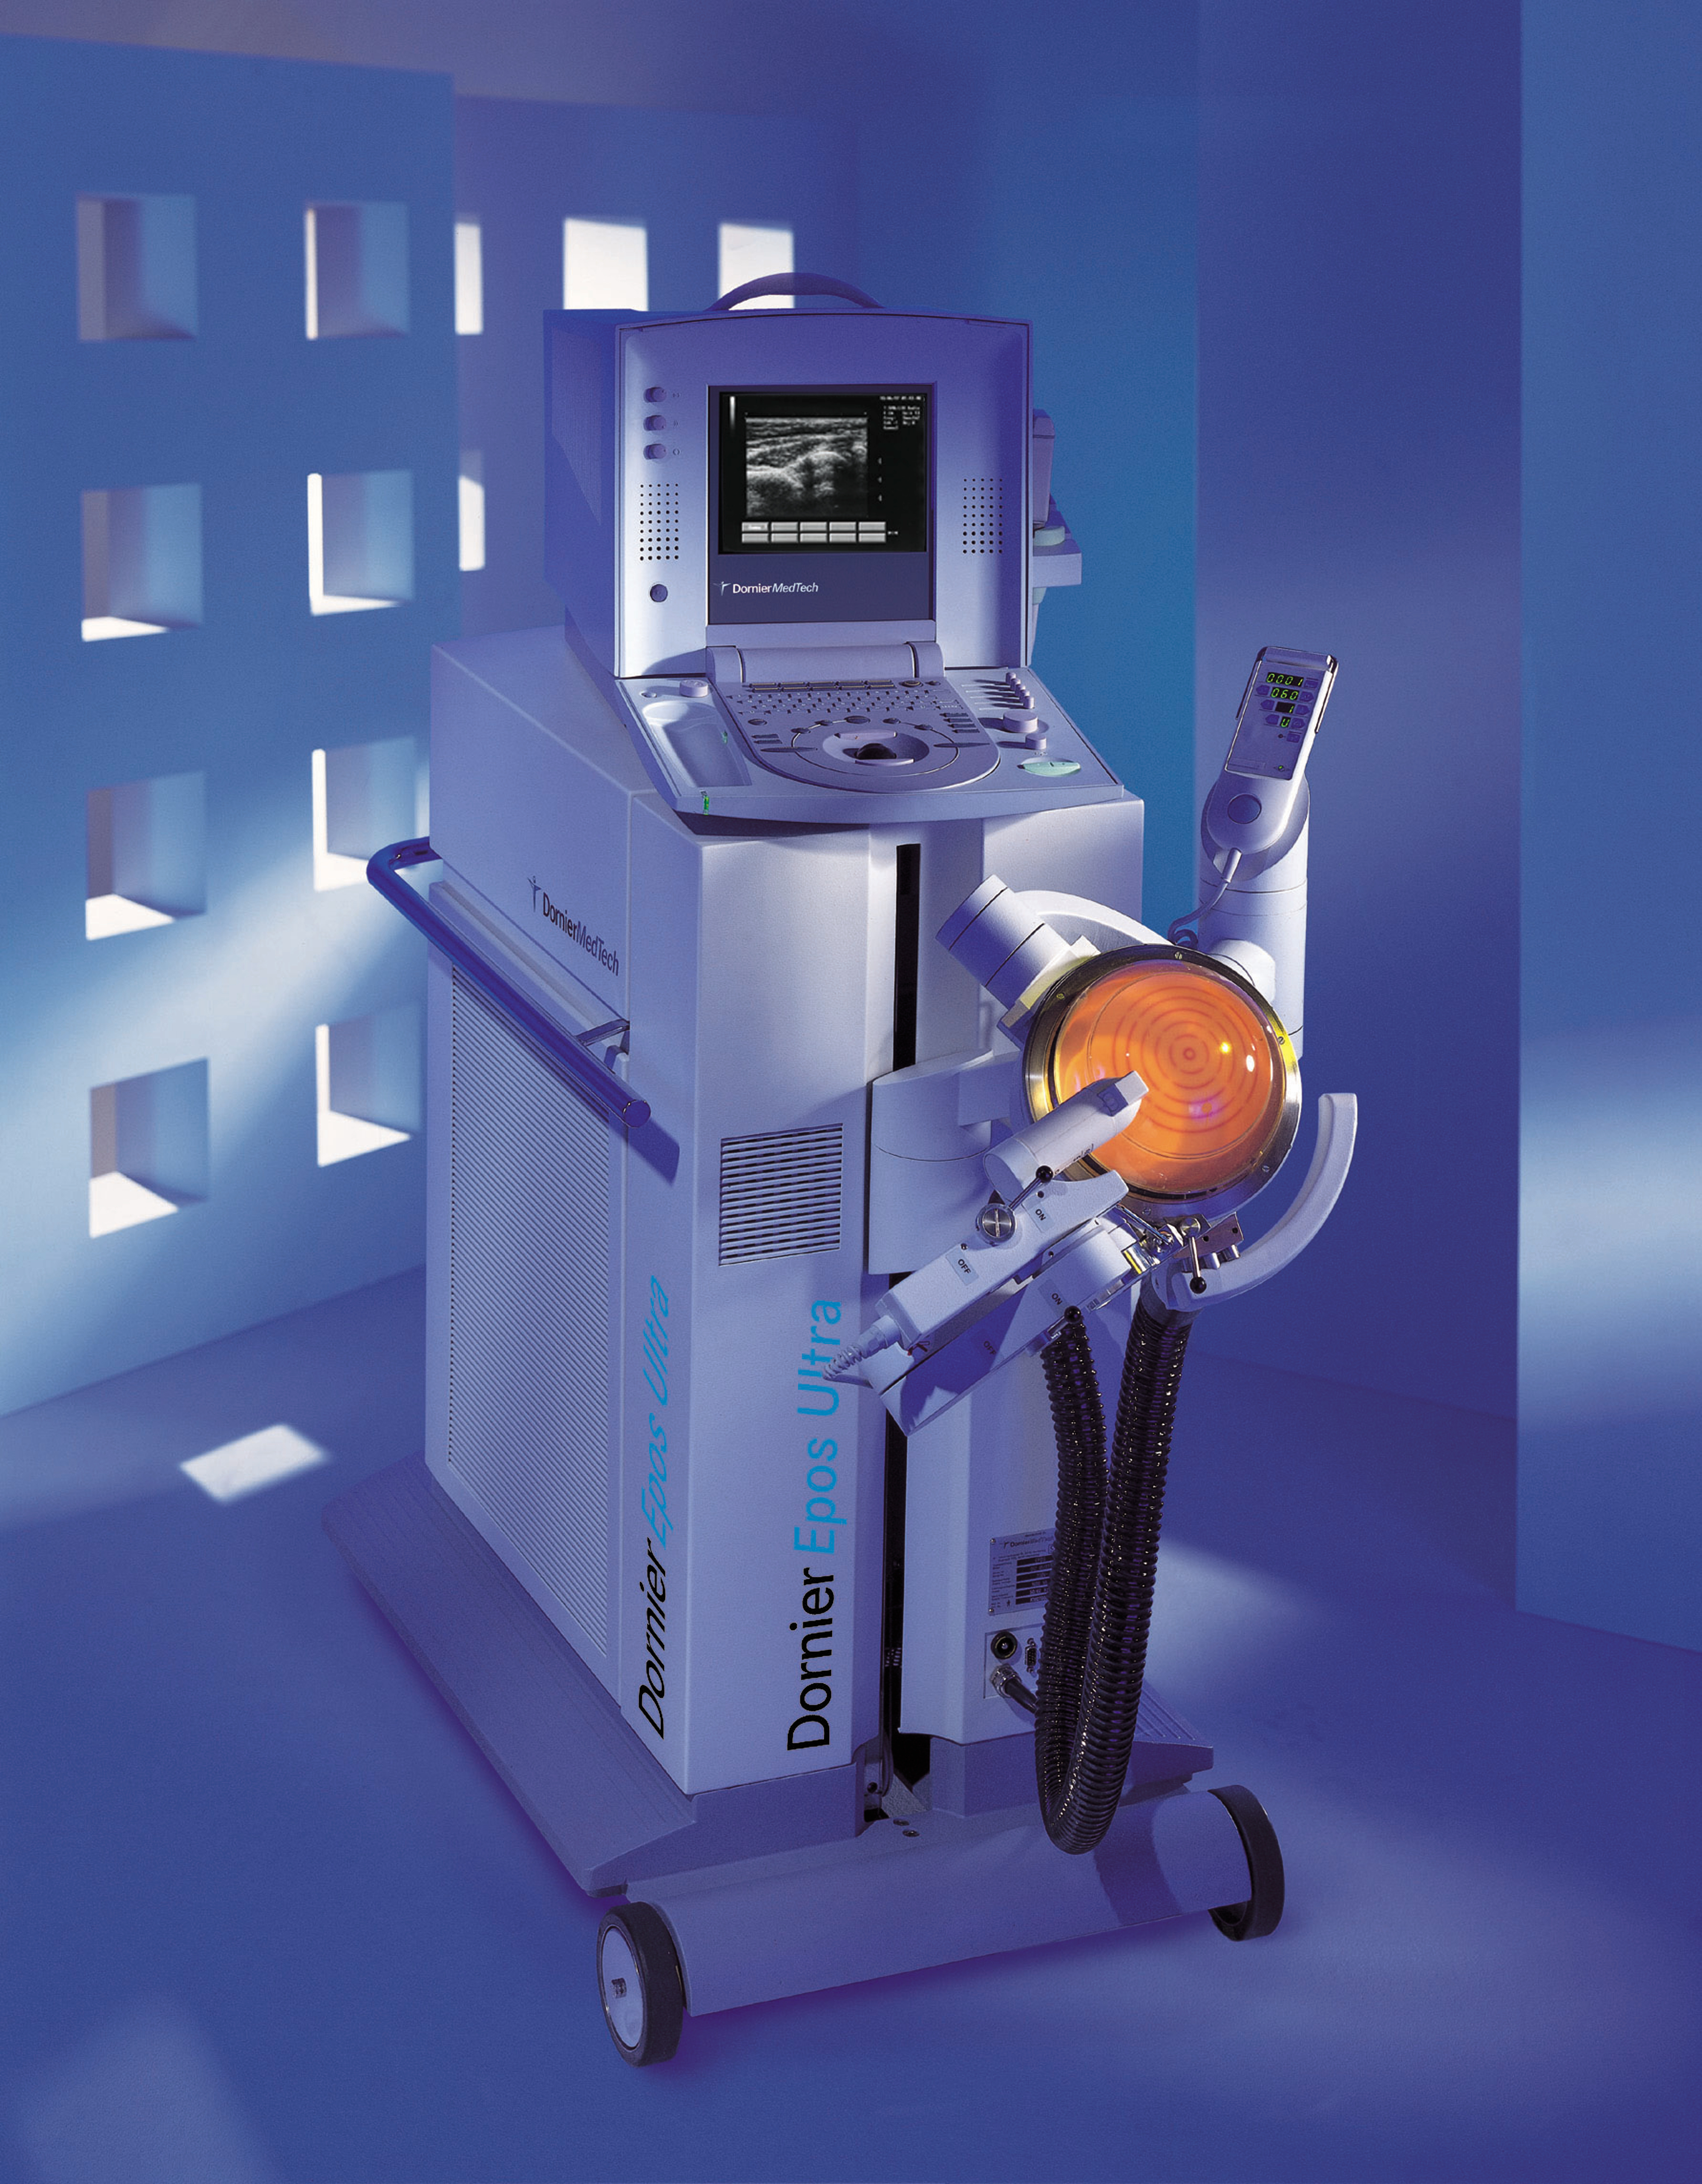 ESWT, Extracorporeal Shock-Wave Therapy